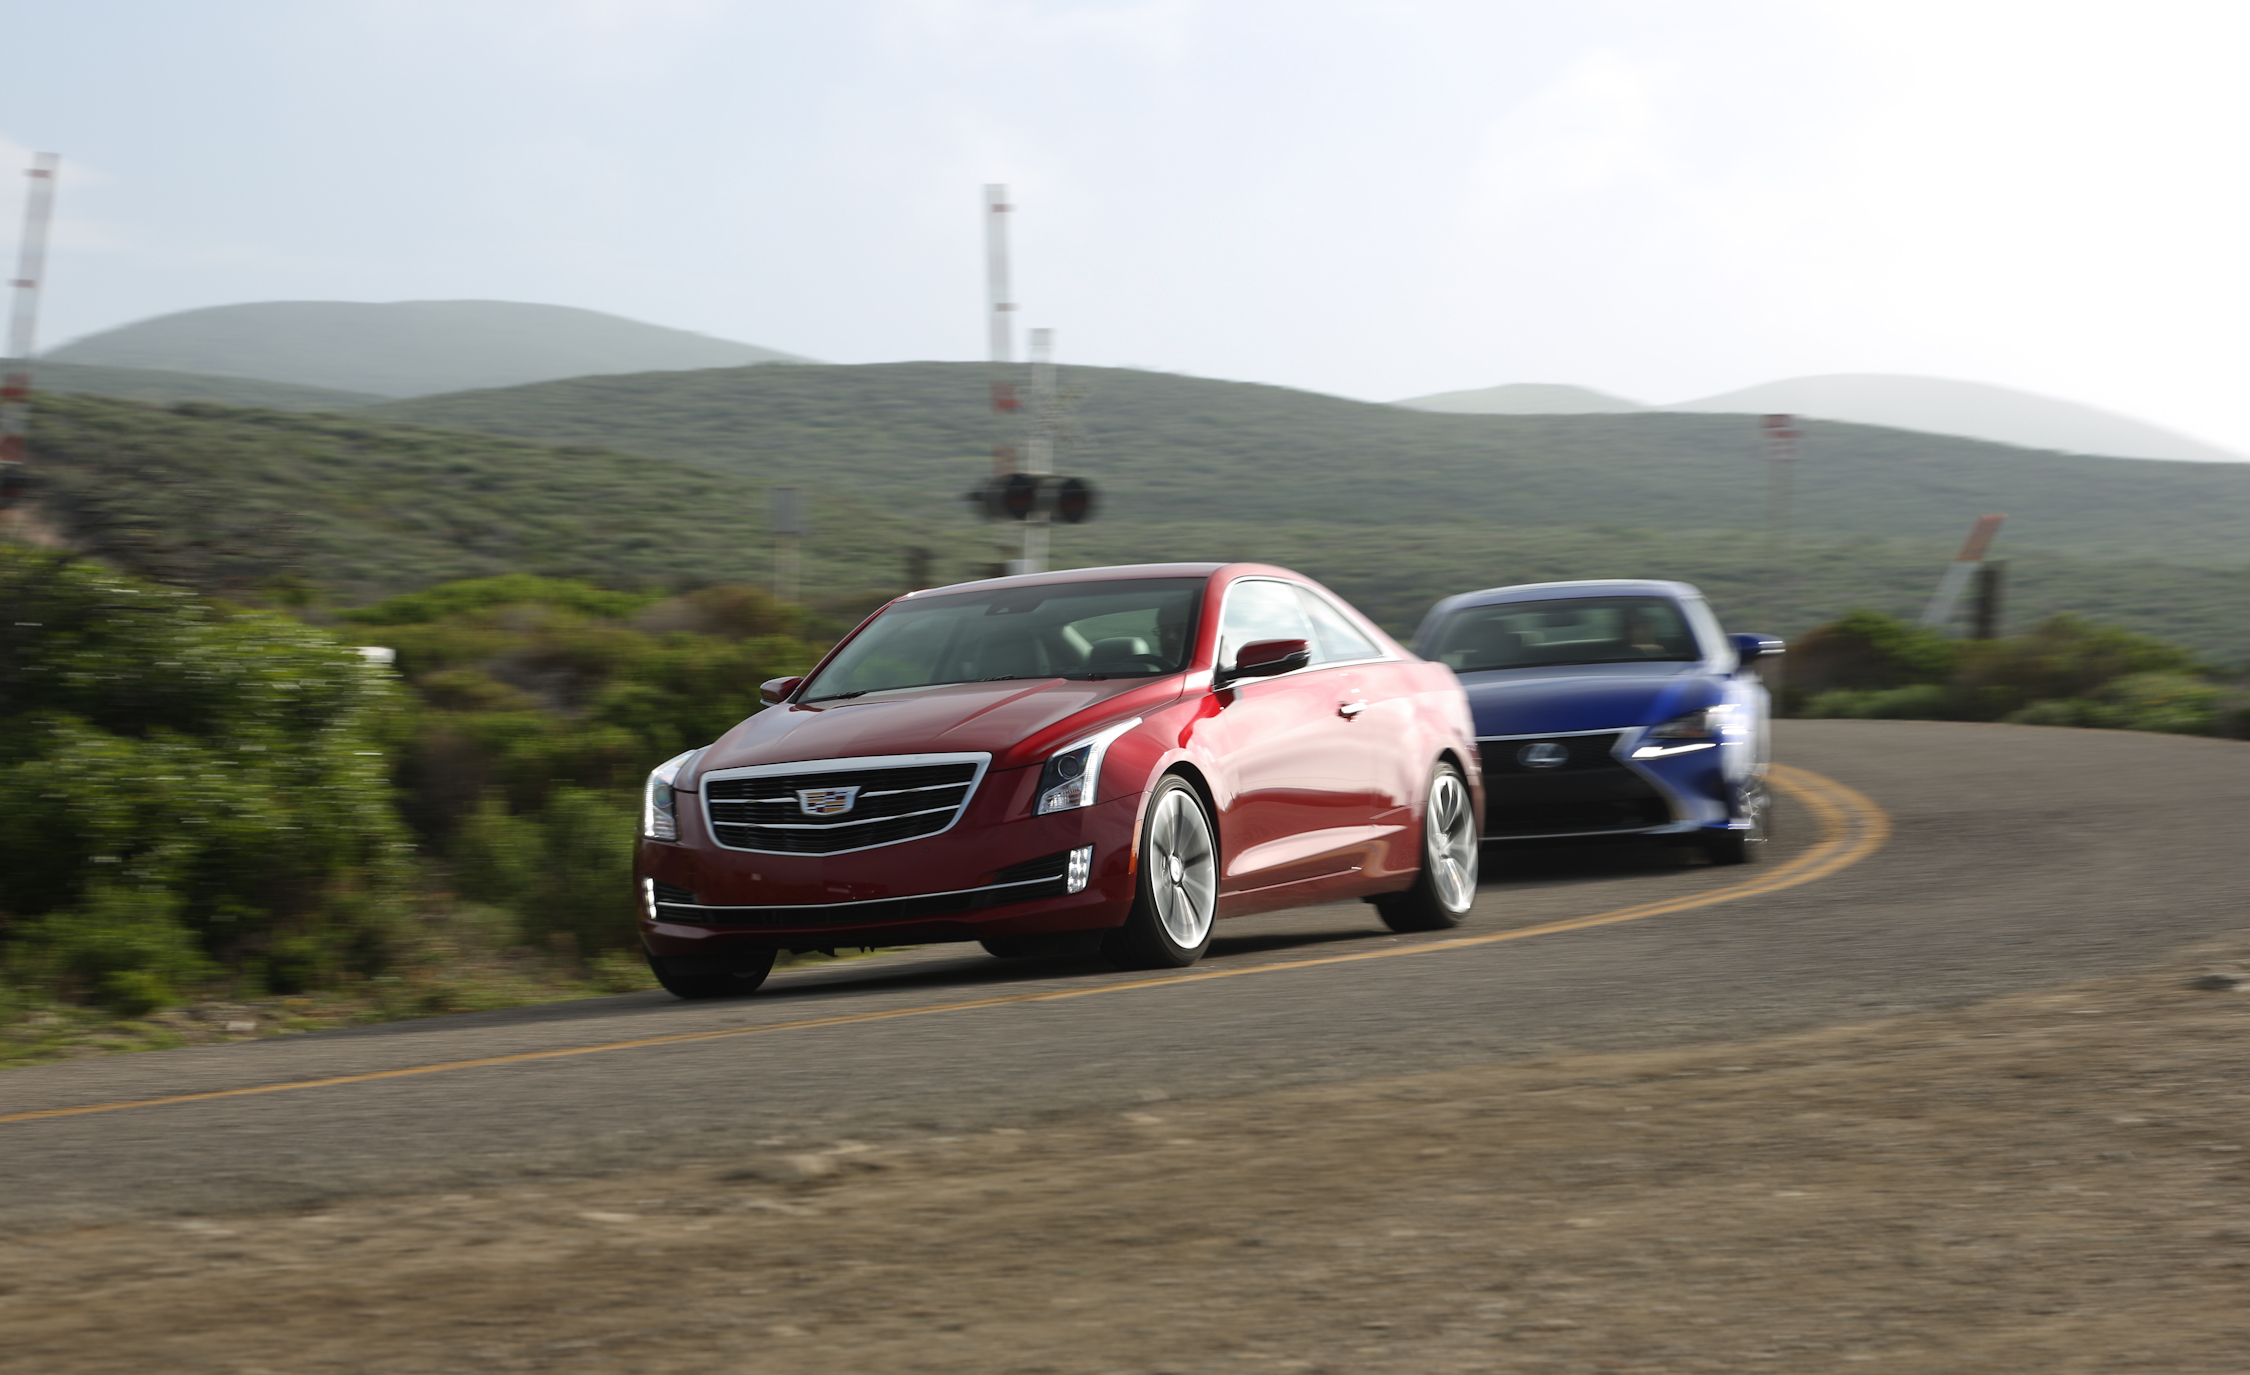 2015 Cadillac ATS Coupe  (Photo 2 of 21)